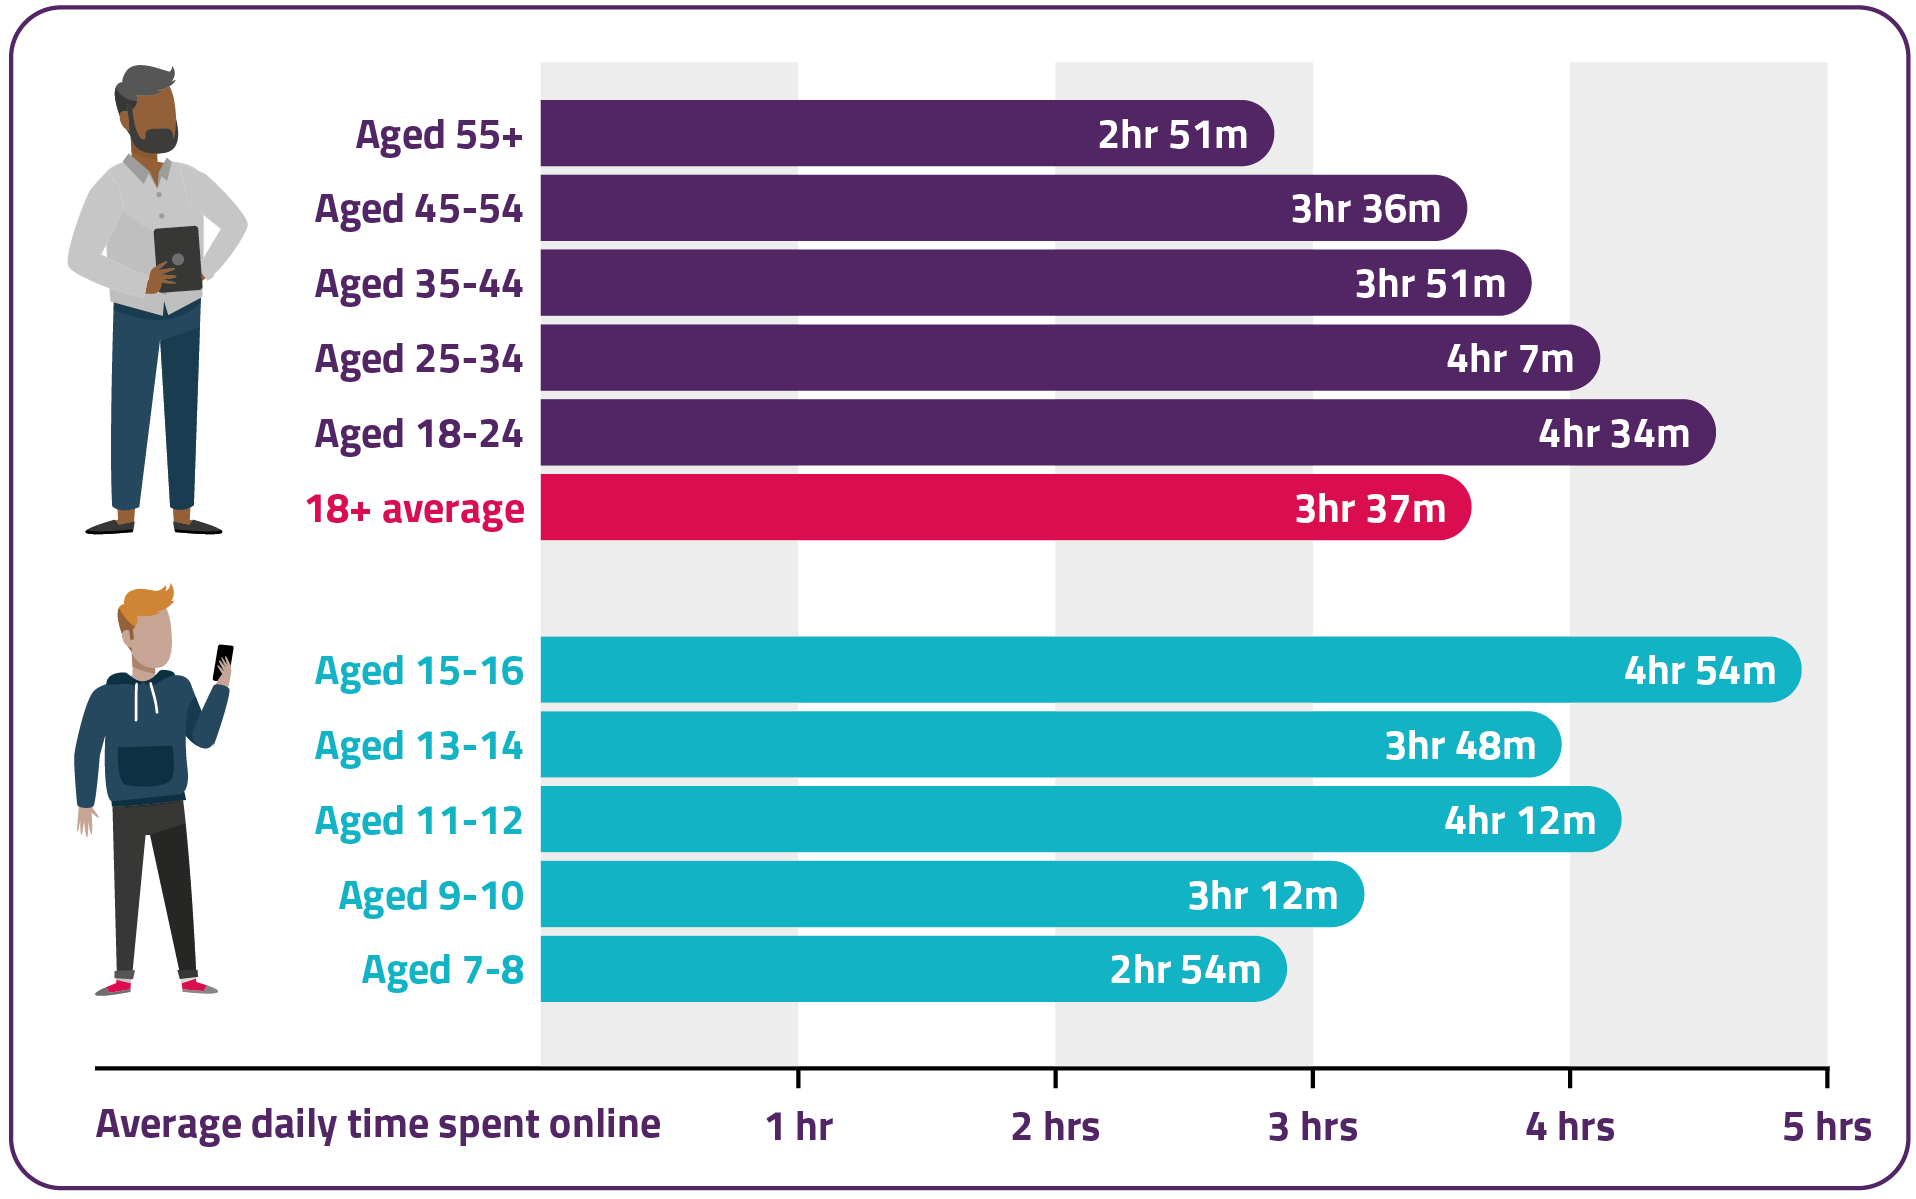 On average, UK adults aged 18+ spent three hours and 37 minutes online each day in 2020. Those aged 15-16 spent four hours 54 minutes, 13-14s spent three hours 48 minutes, 11-12s spent four hours 12 minutes, 9-10s spent three hours 12 minutes, and 7-8s spent two hours and 54 minutes.